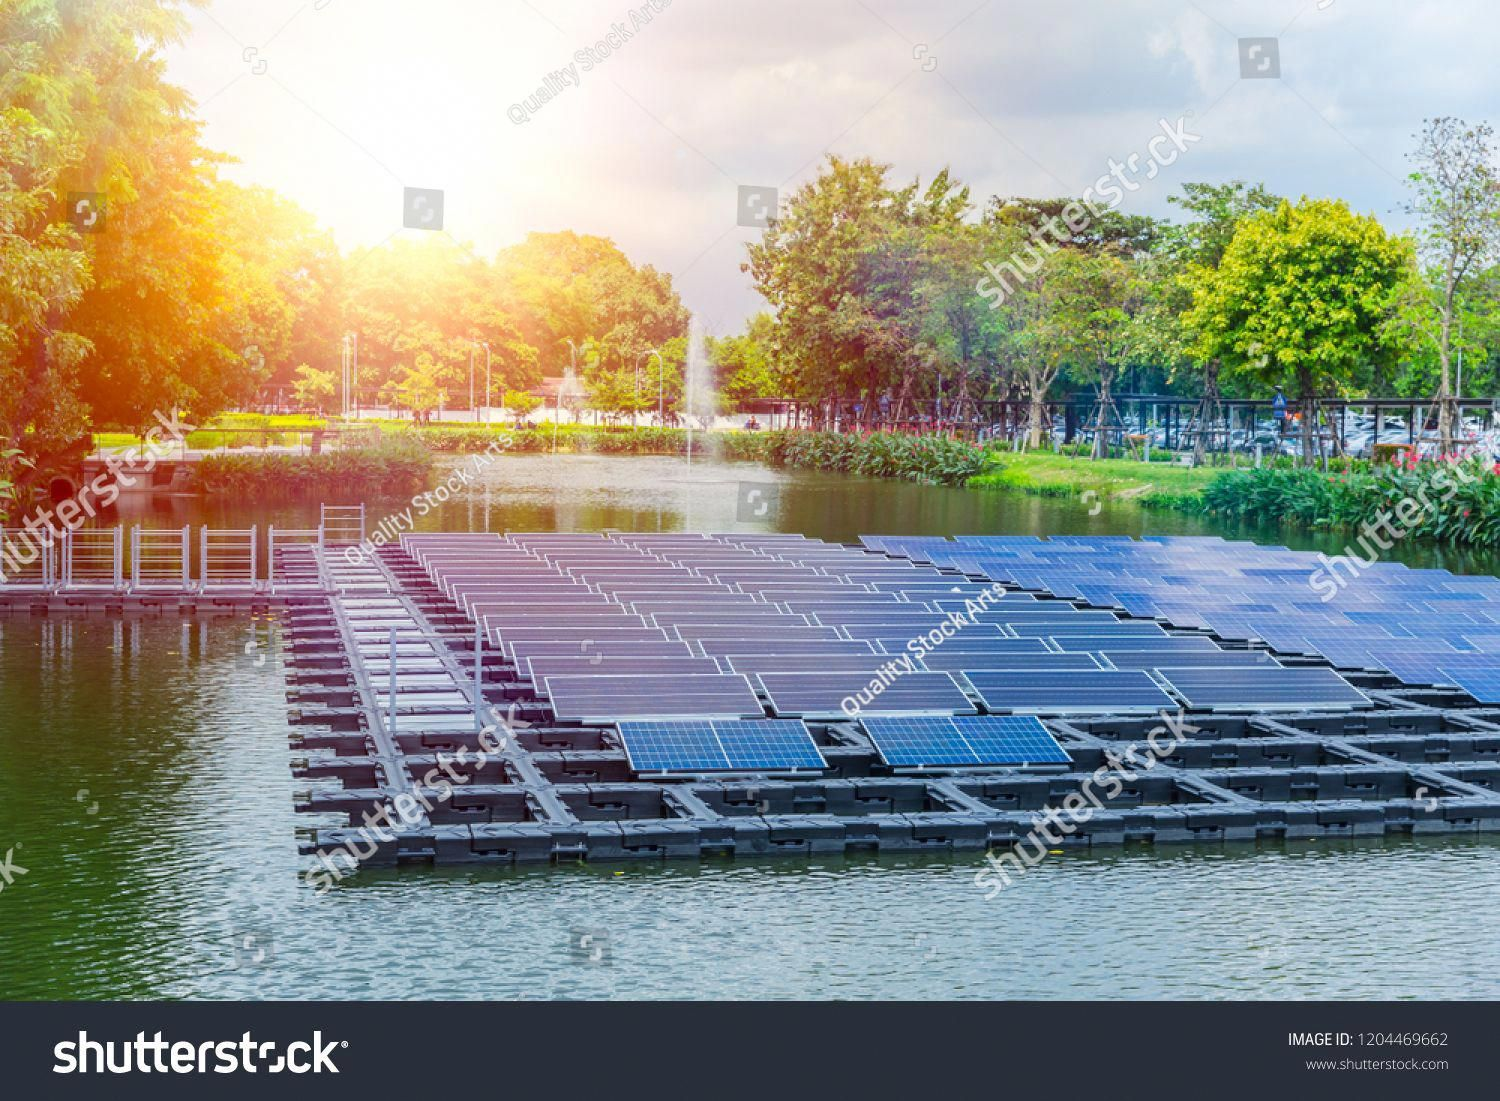 Floating Solar Panels Or Solar Cell Platform On The Water Lake Pond For Saving Energy Technology Innovation Royalty Free Image P In 2020 Solar Solar Cell Solar Panels